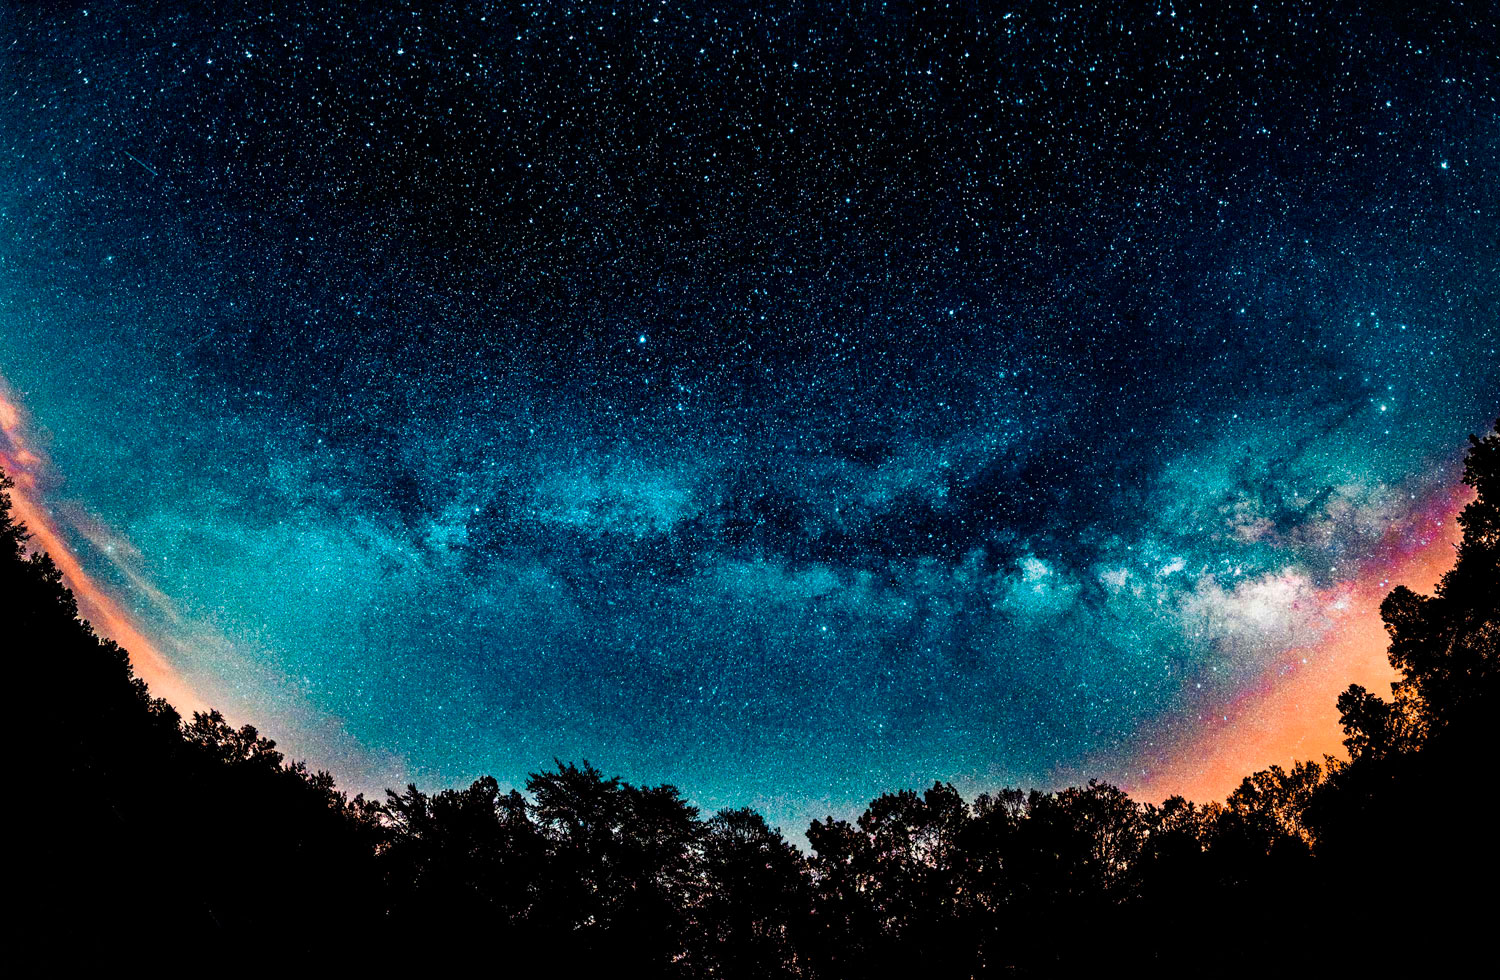 A panorama of the Milky Way taken from Fall Creek Falls State Park during the Eta Aquarid meteor shower on May 4, 2014.